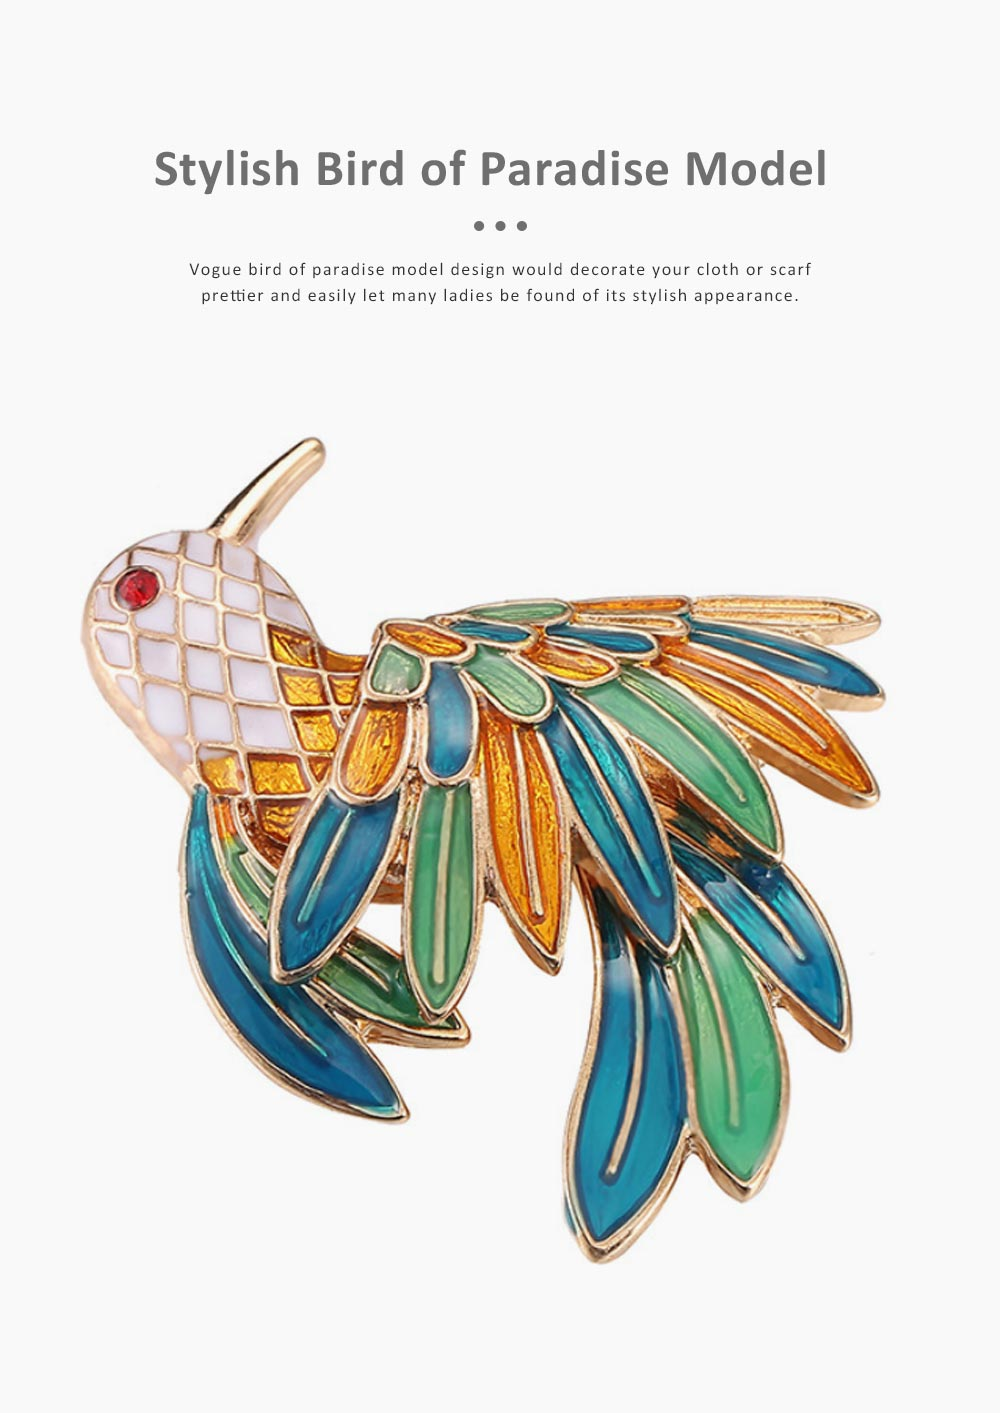 Delicate Fancy Bird of Paradise Model Breastpin for Ladies, Colorful Oil-spot Glaze Brooch Clothes Ornament Decoration 4